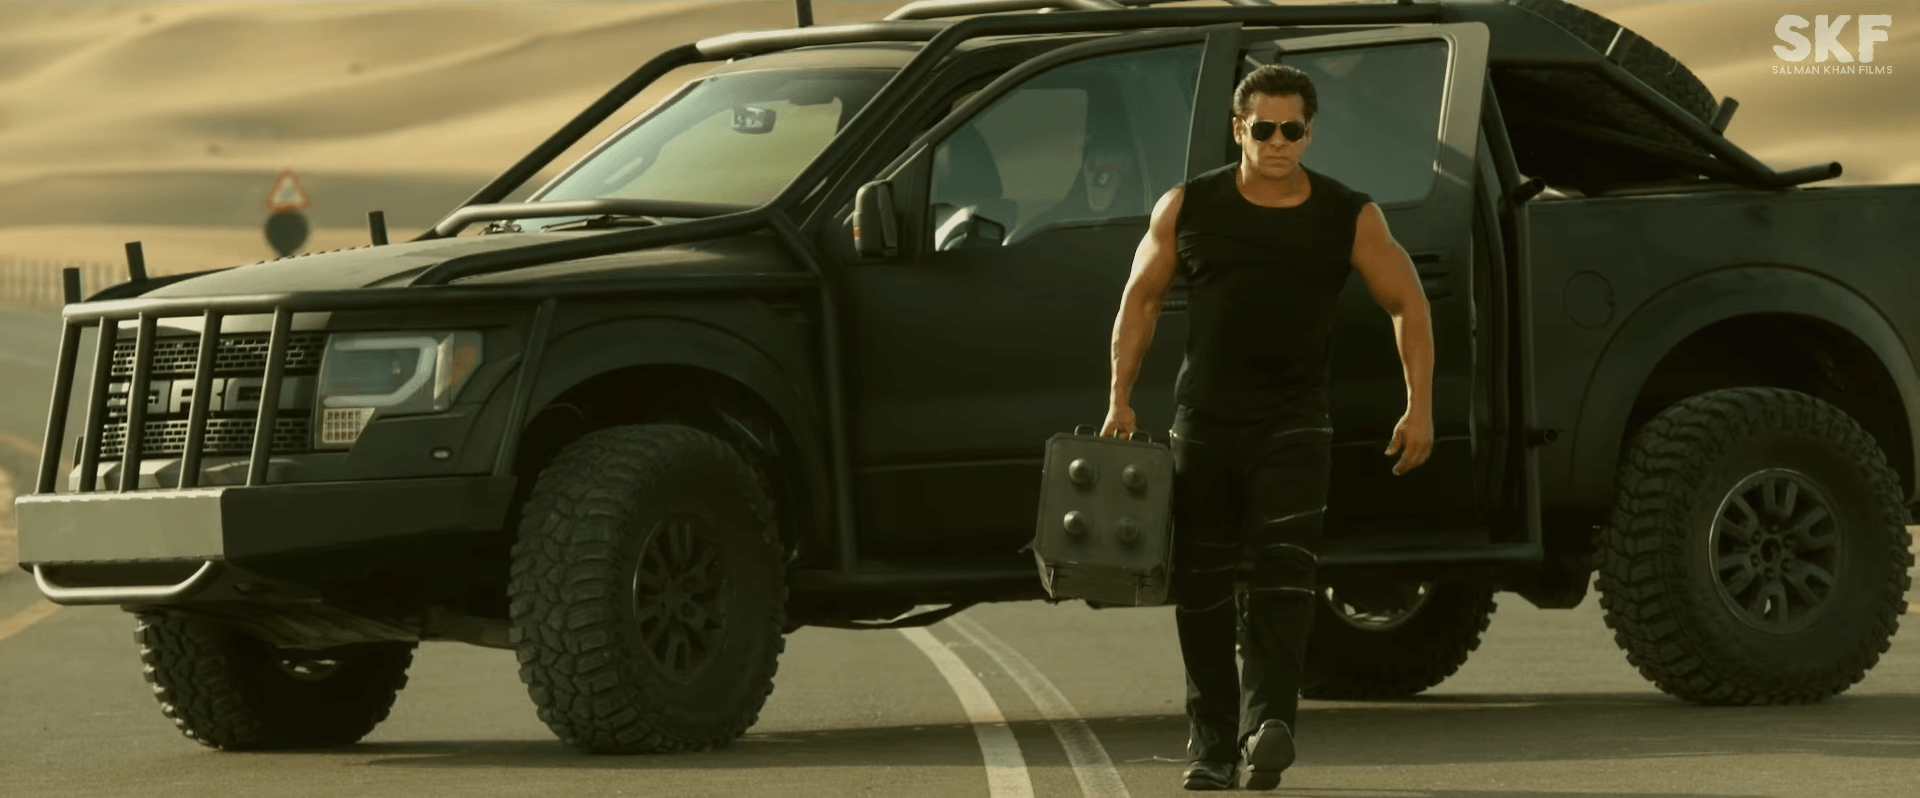 Race 3 Wallpapers Wallpaper Cave